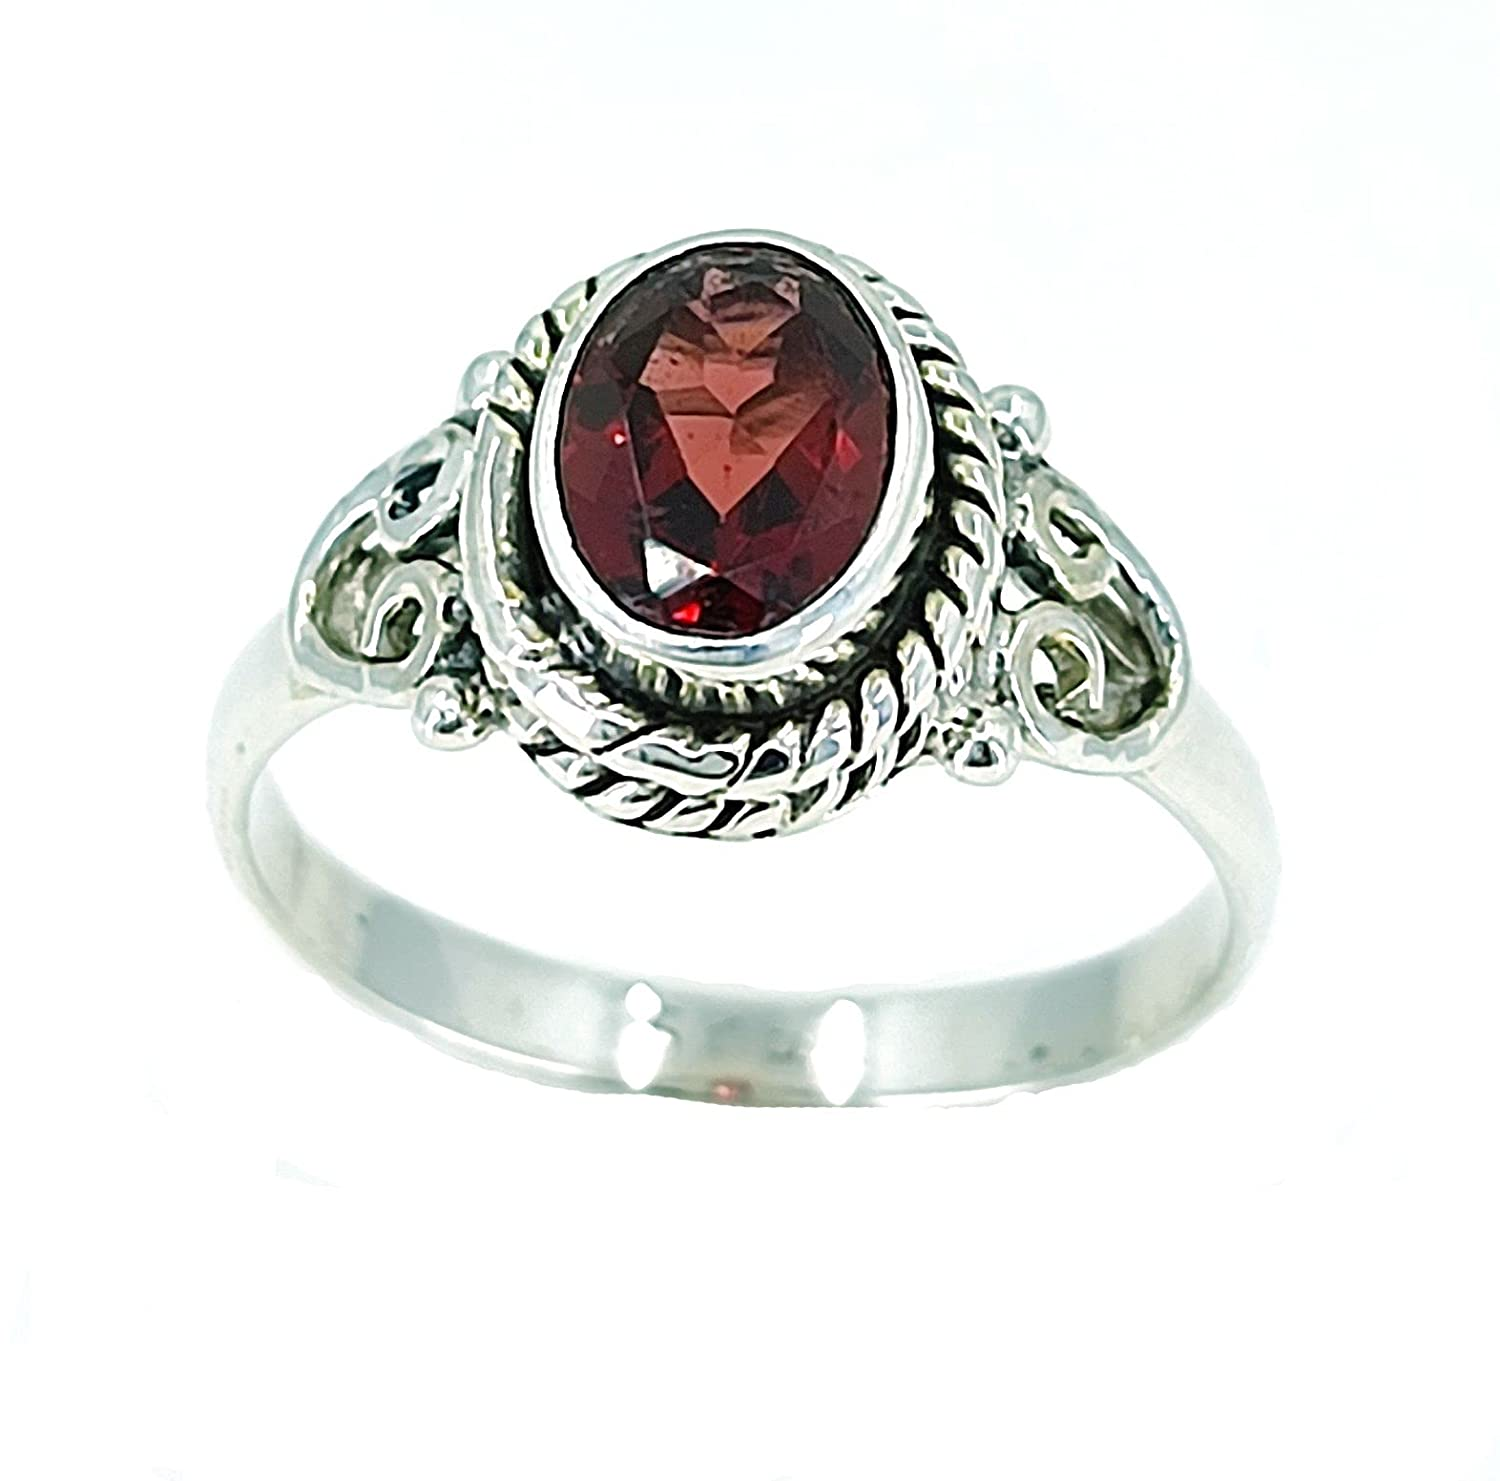 Navya Craft Garnet Silver OFFicial store Ring Solid Sterling 925 Handmad At the price